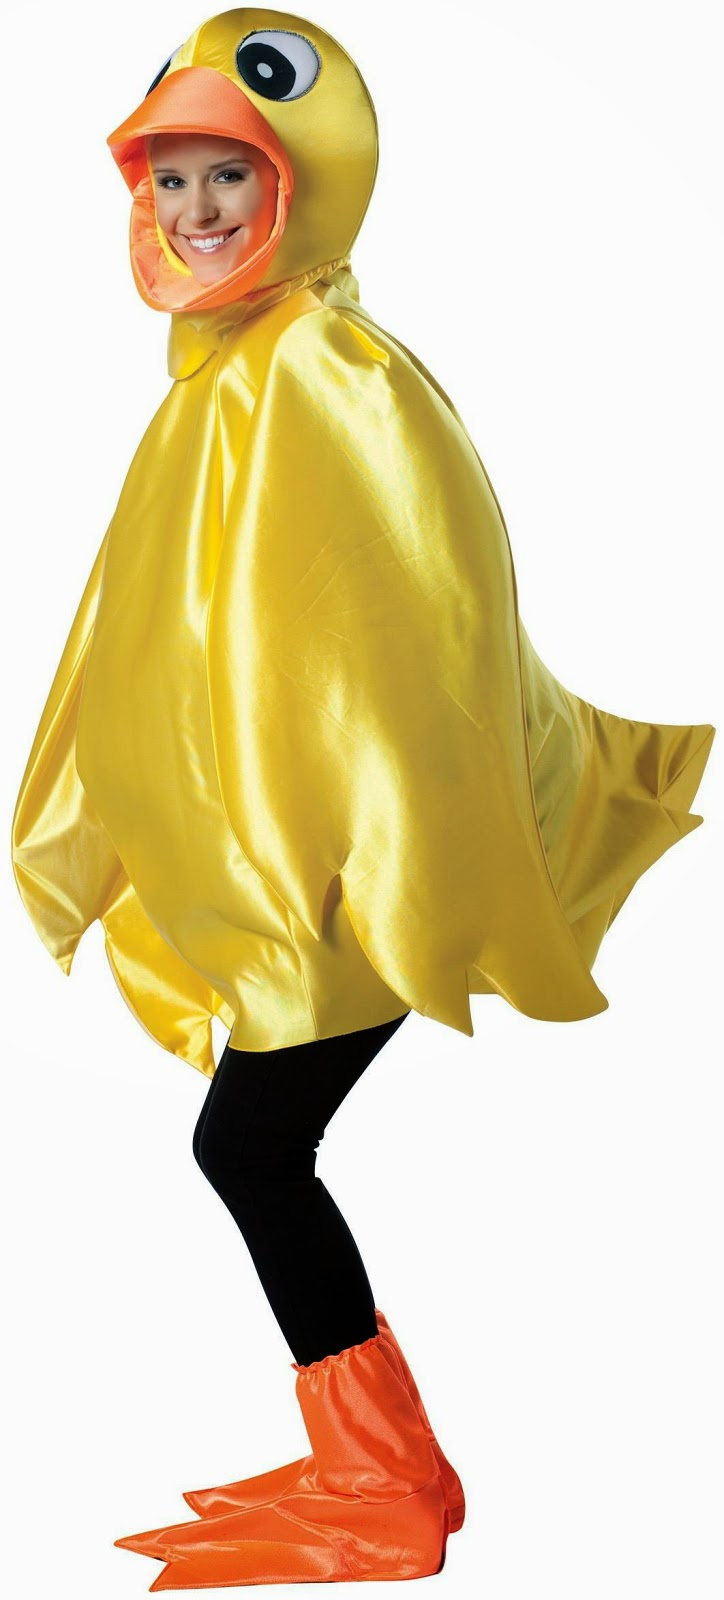 http://www.partybell.com/p-19272-yellow-ducky-adult-costume.aspx?utm_source=Blog&utm_medium=Social&utm_campaign=best-theme-party-ideas-April-fool%27s-day